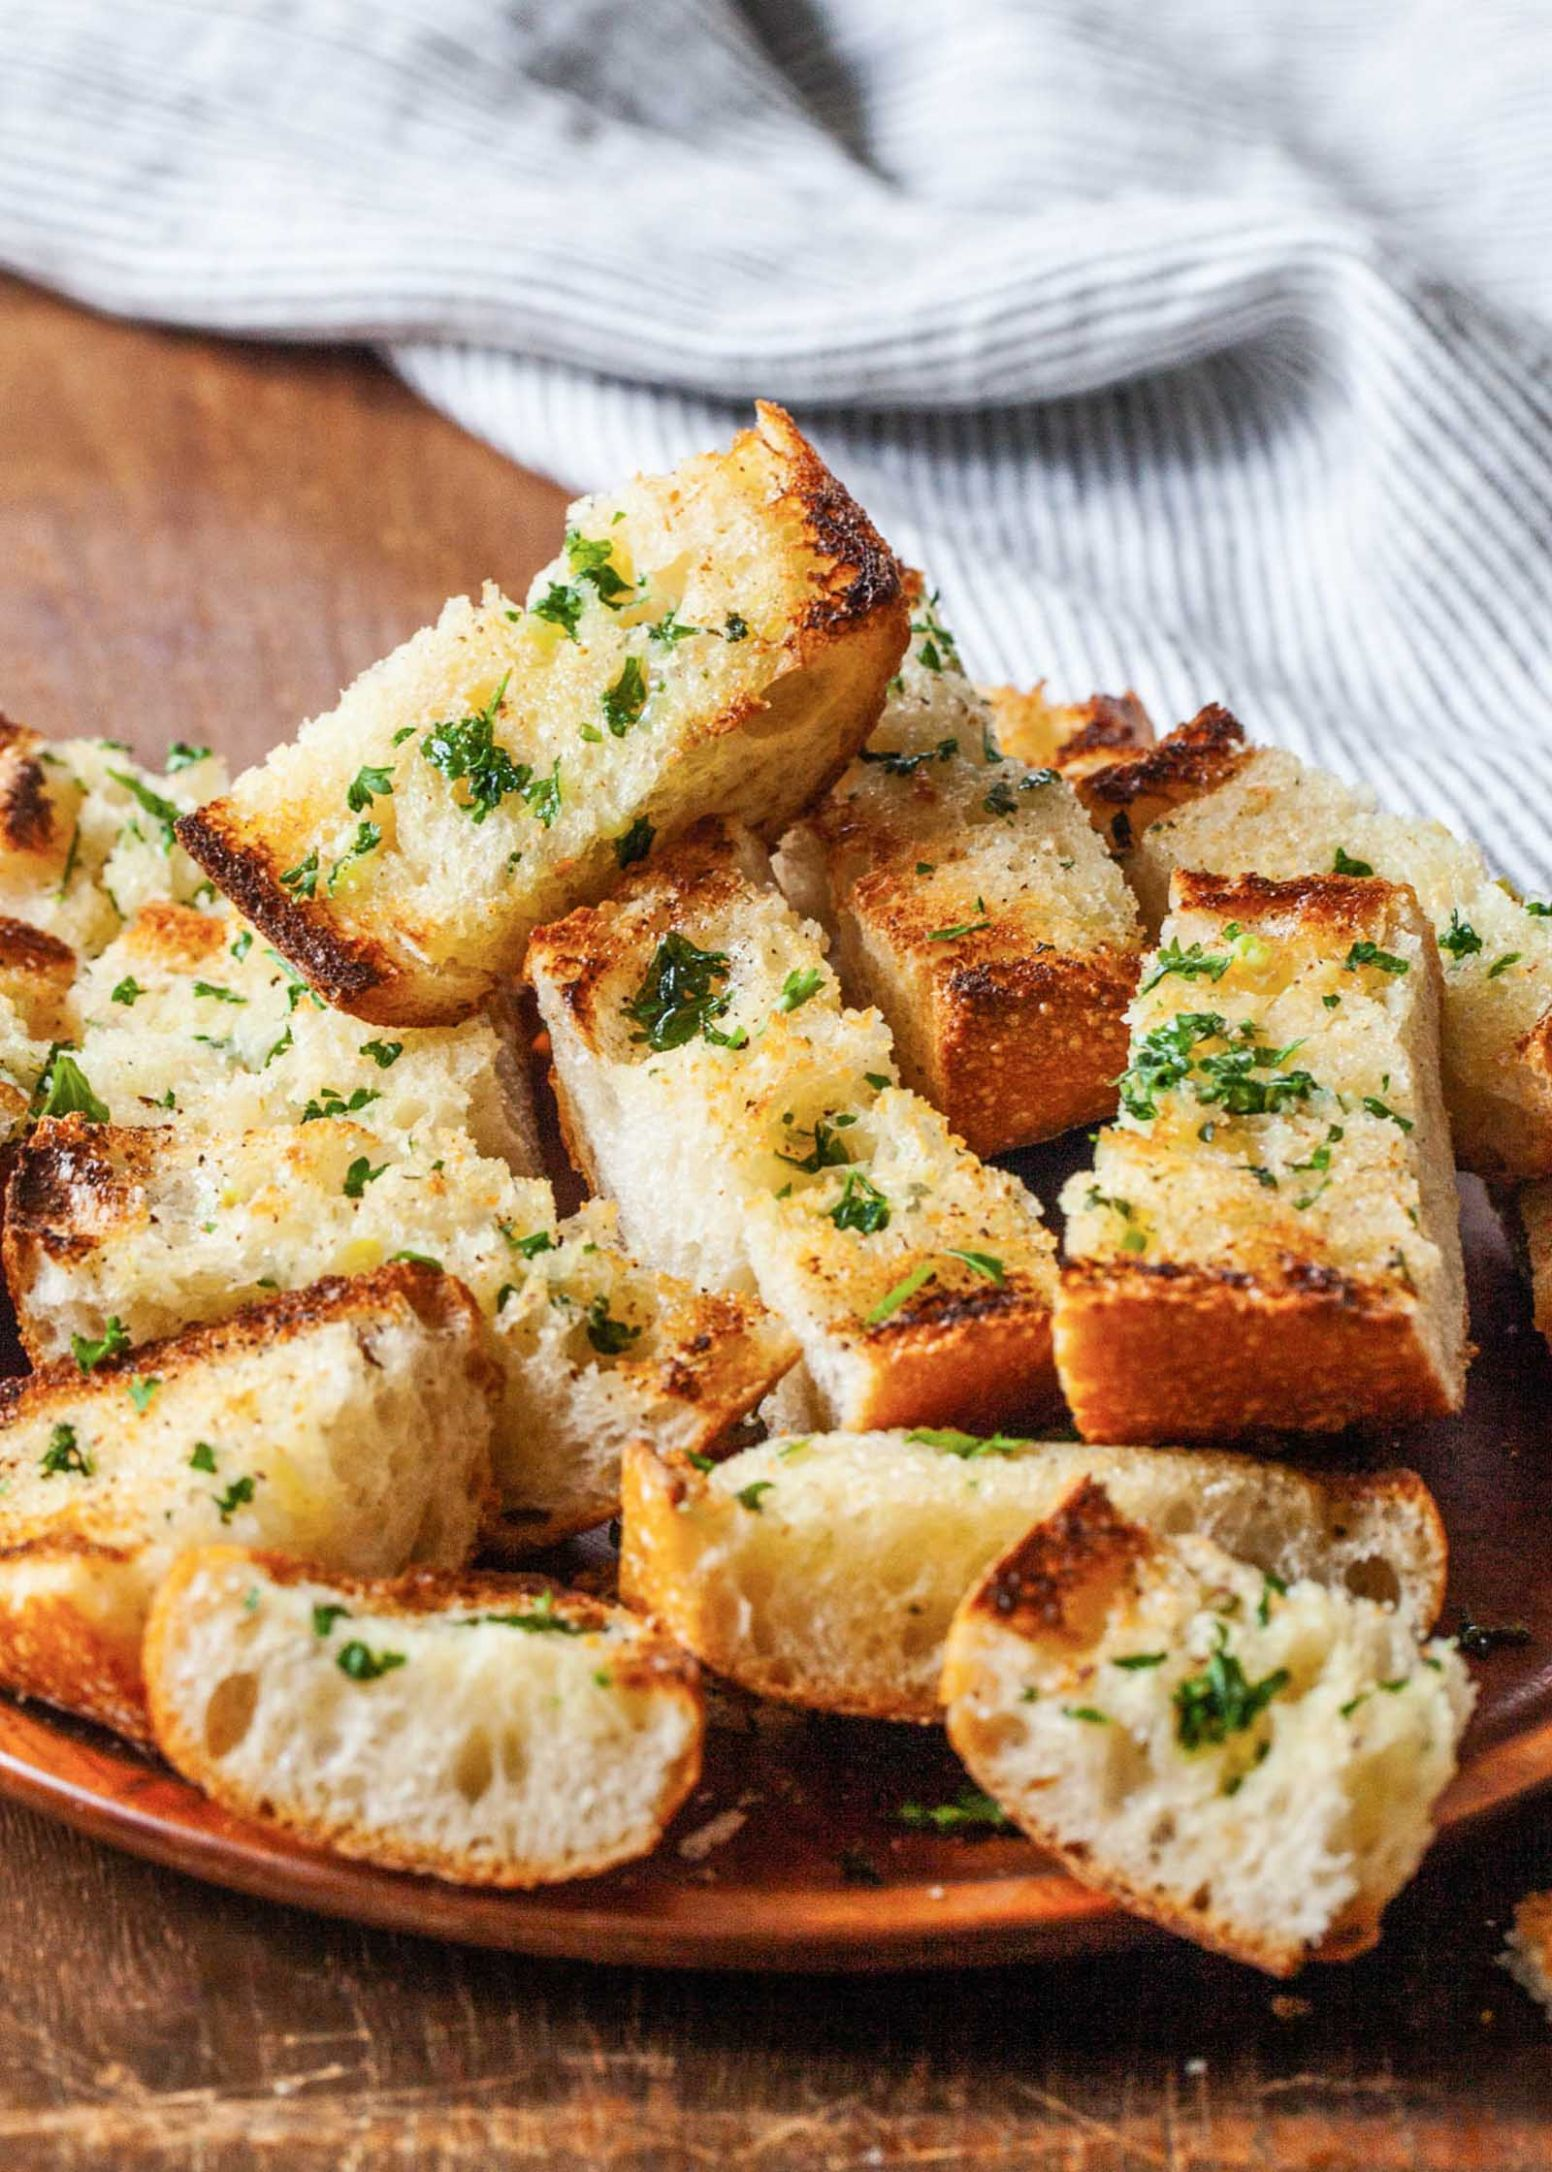 Garlic Bread - Simple Recipes Garlic Bread